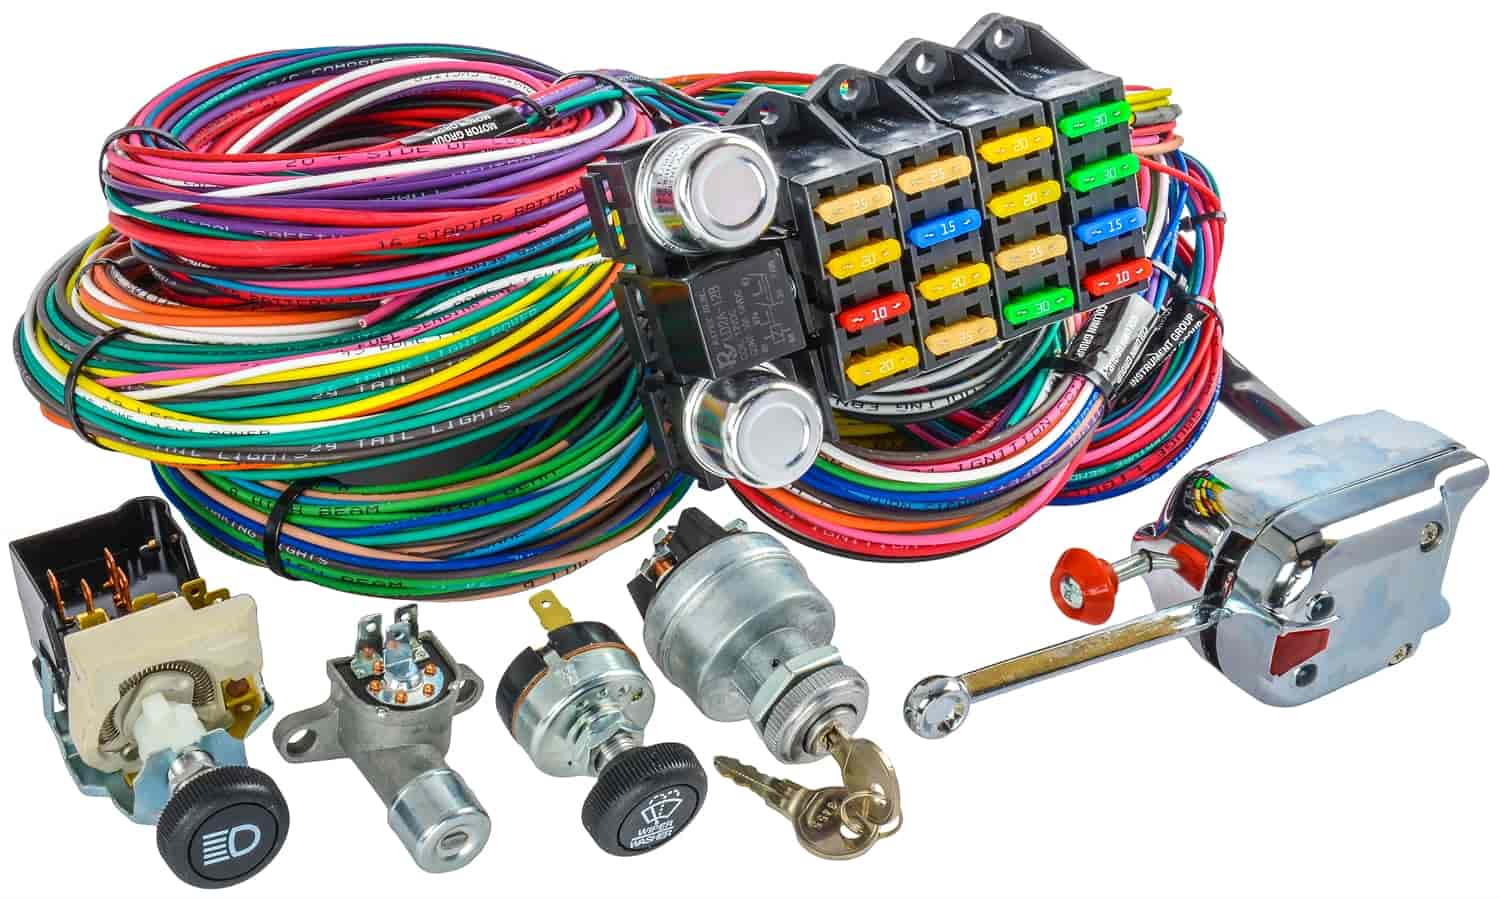 555 10405k jegs performance products 10405k universal wiring harness universal wiring harness kits at couponss.co